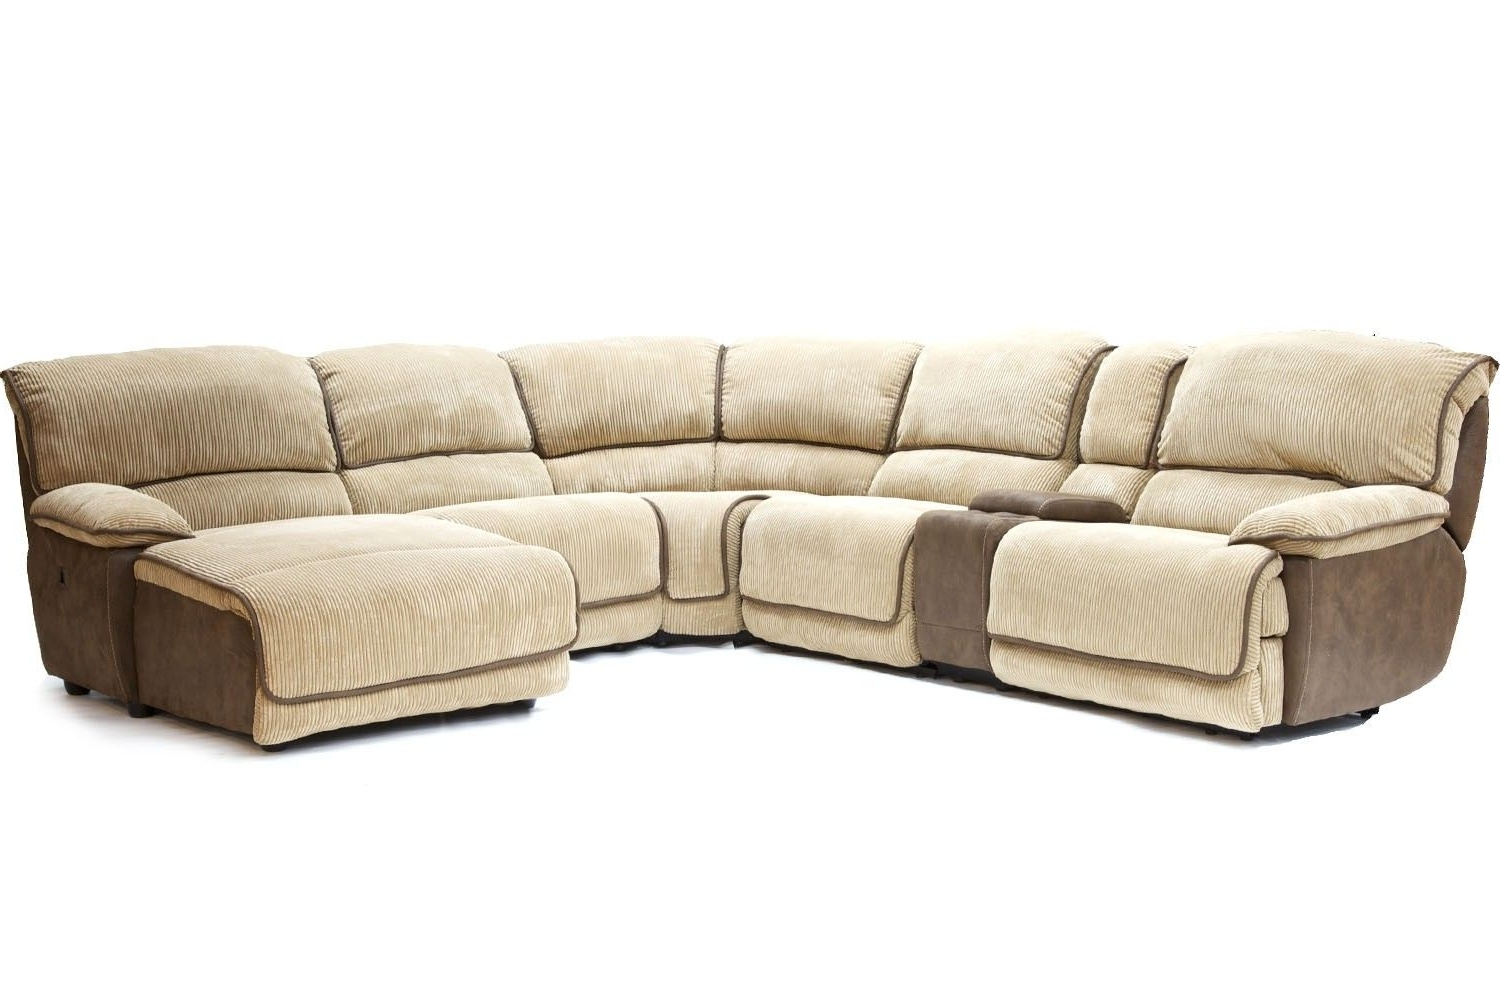 Current Mor Furniture For Less: The Austin Cafe Reclining Living Room Inside Sectional Sofas At Austin (View 4 of 15)